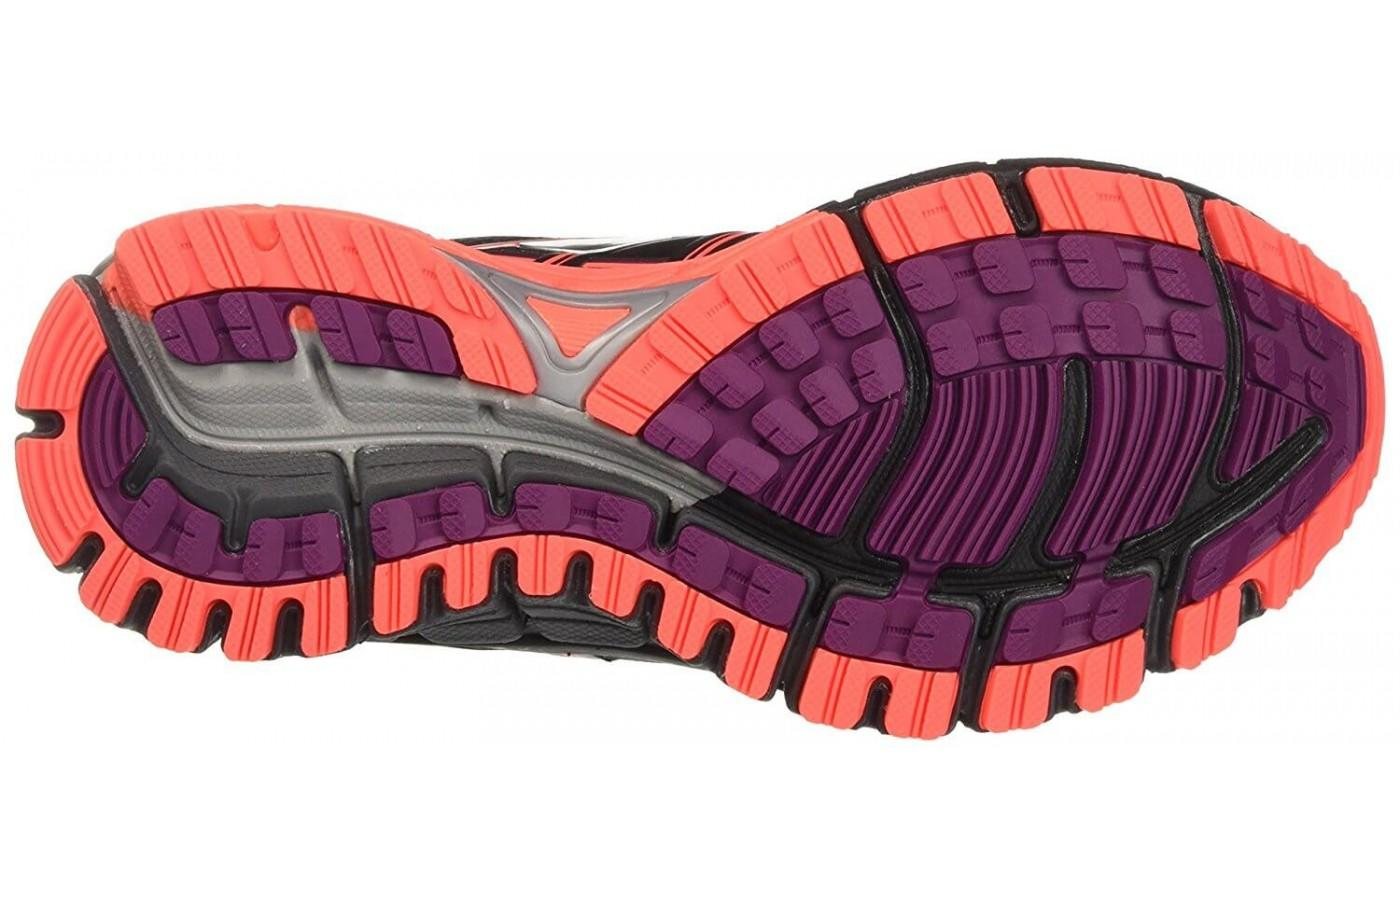 the raised lugs on the outsole will work on a variety of trail terrain